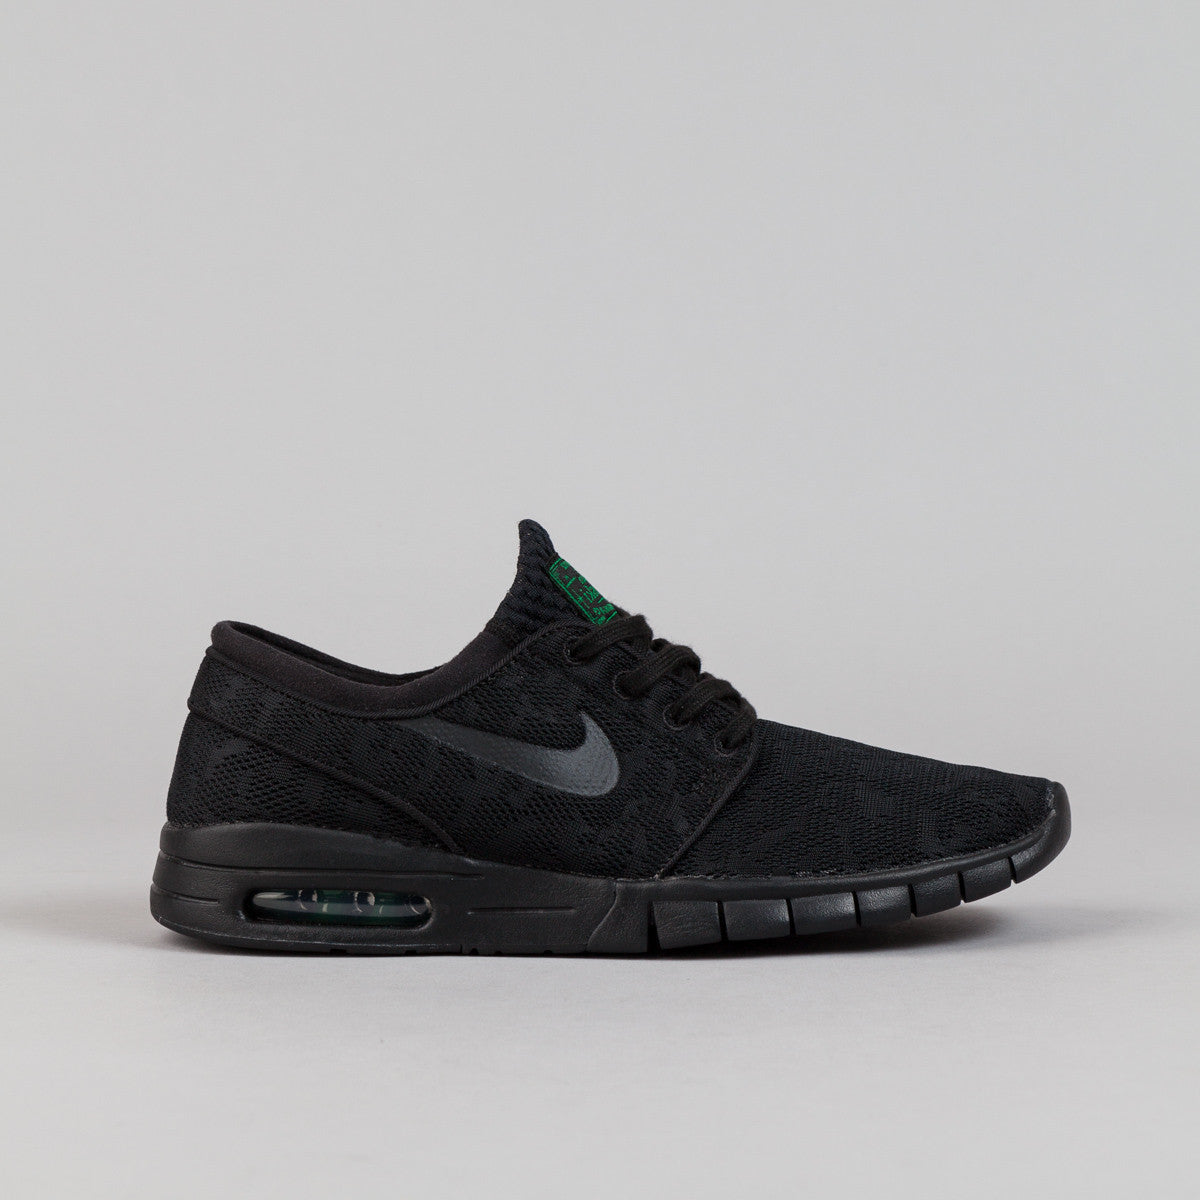 nike sb stefan janoski max shoes black black pine. Black Bedroom Furniture Sets. Home Design Ideas